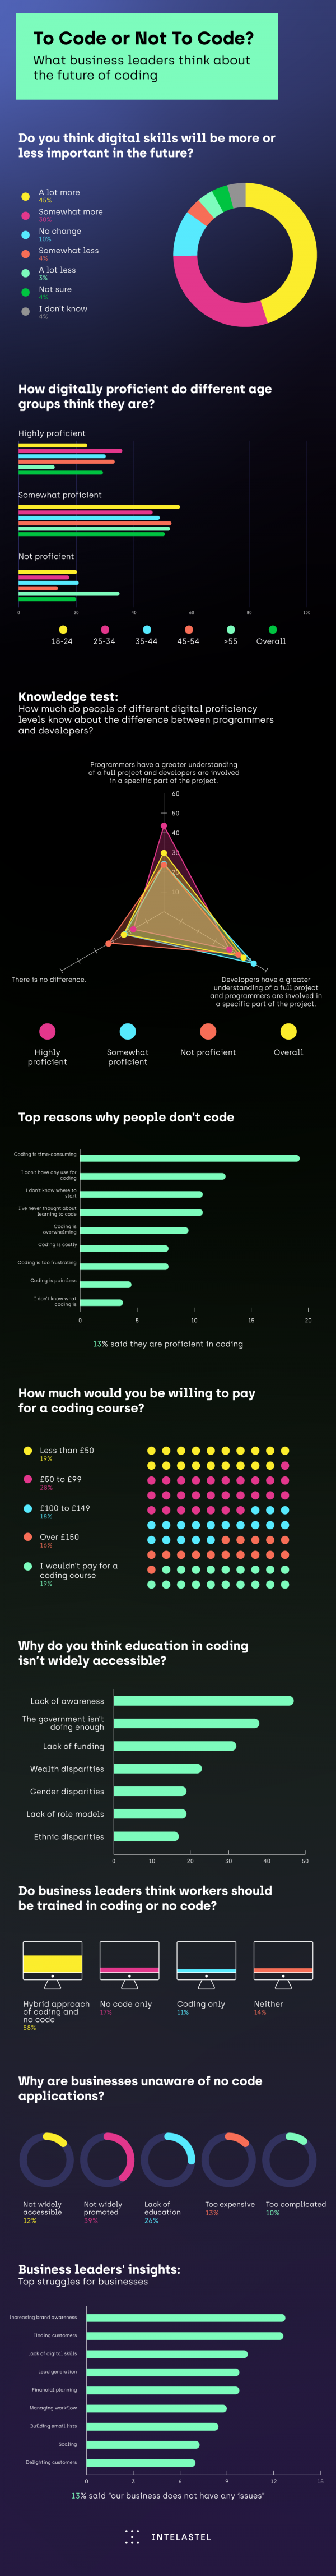 Survey results showing UK business leaders' sentiment towards the future of coding in the workplace